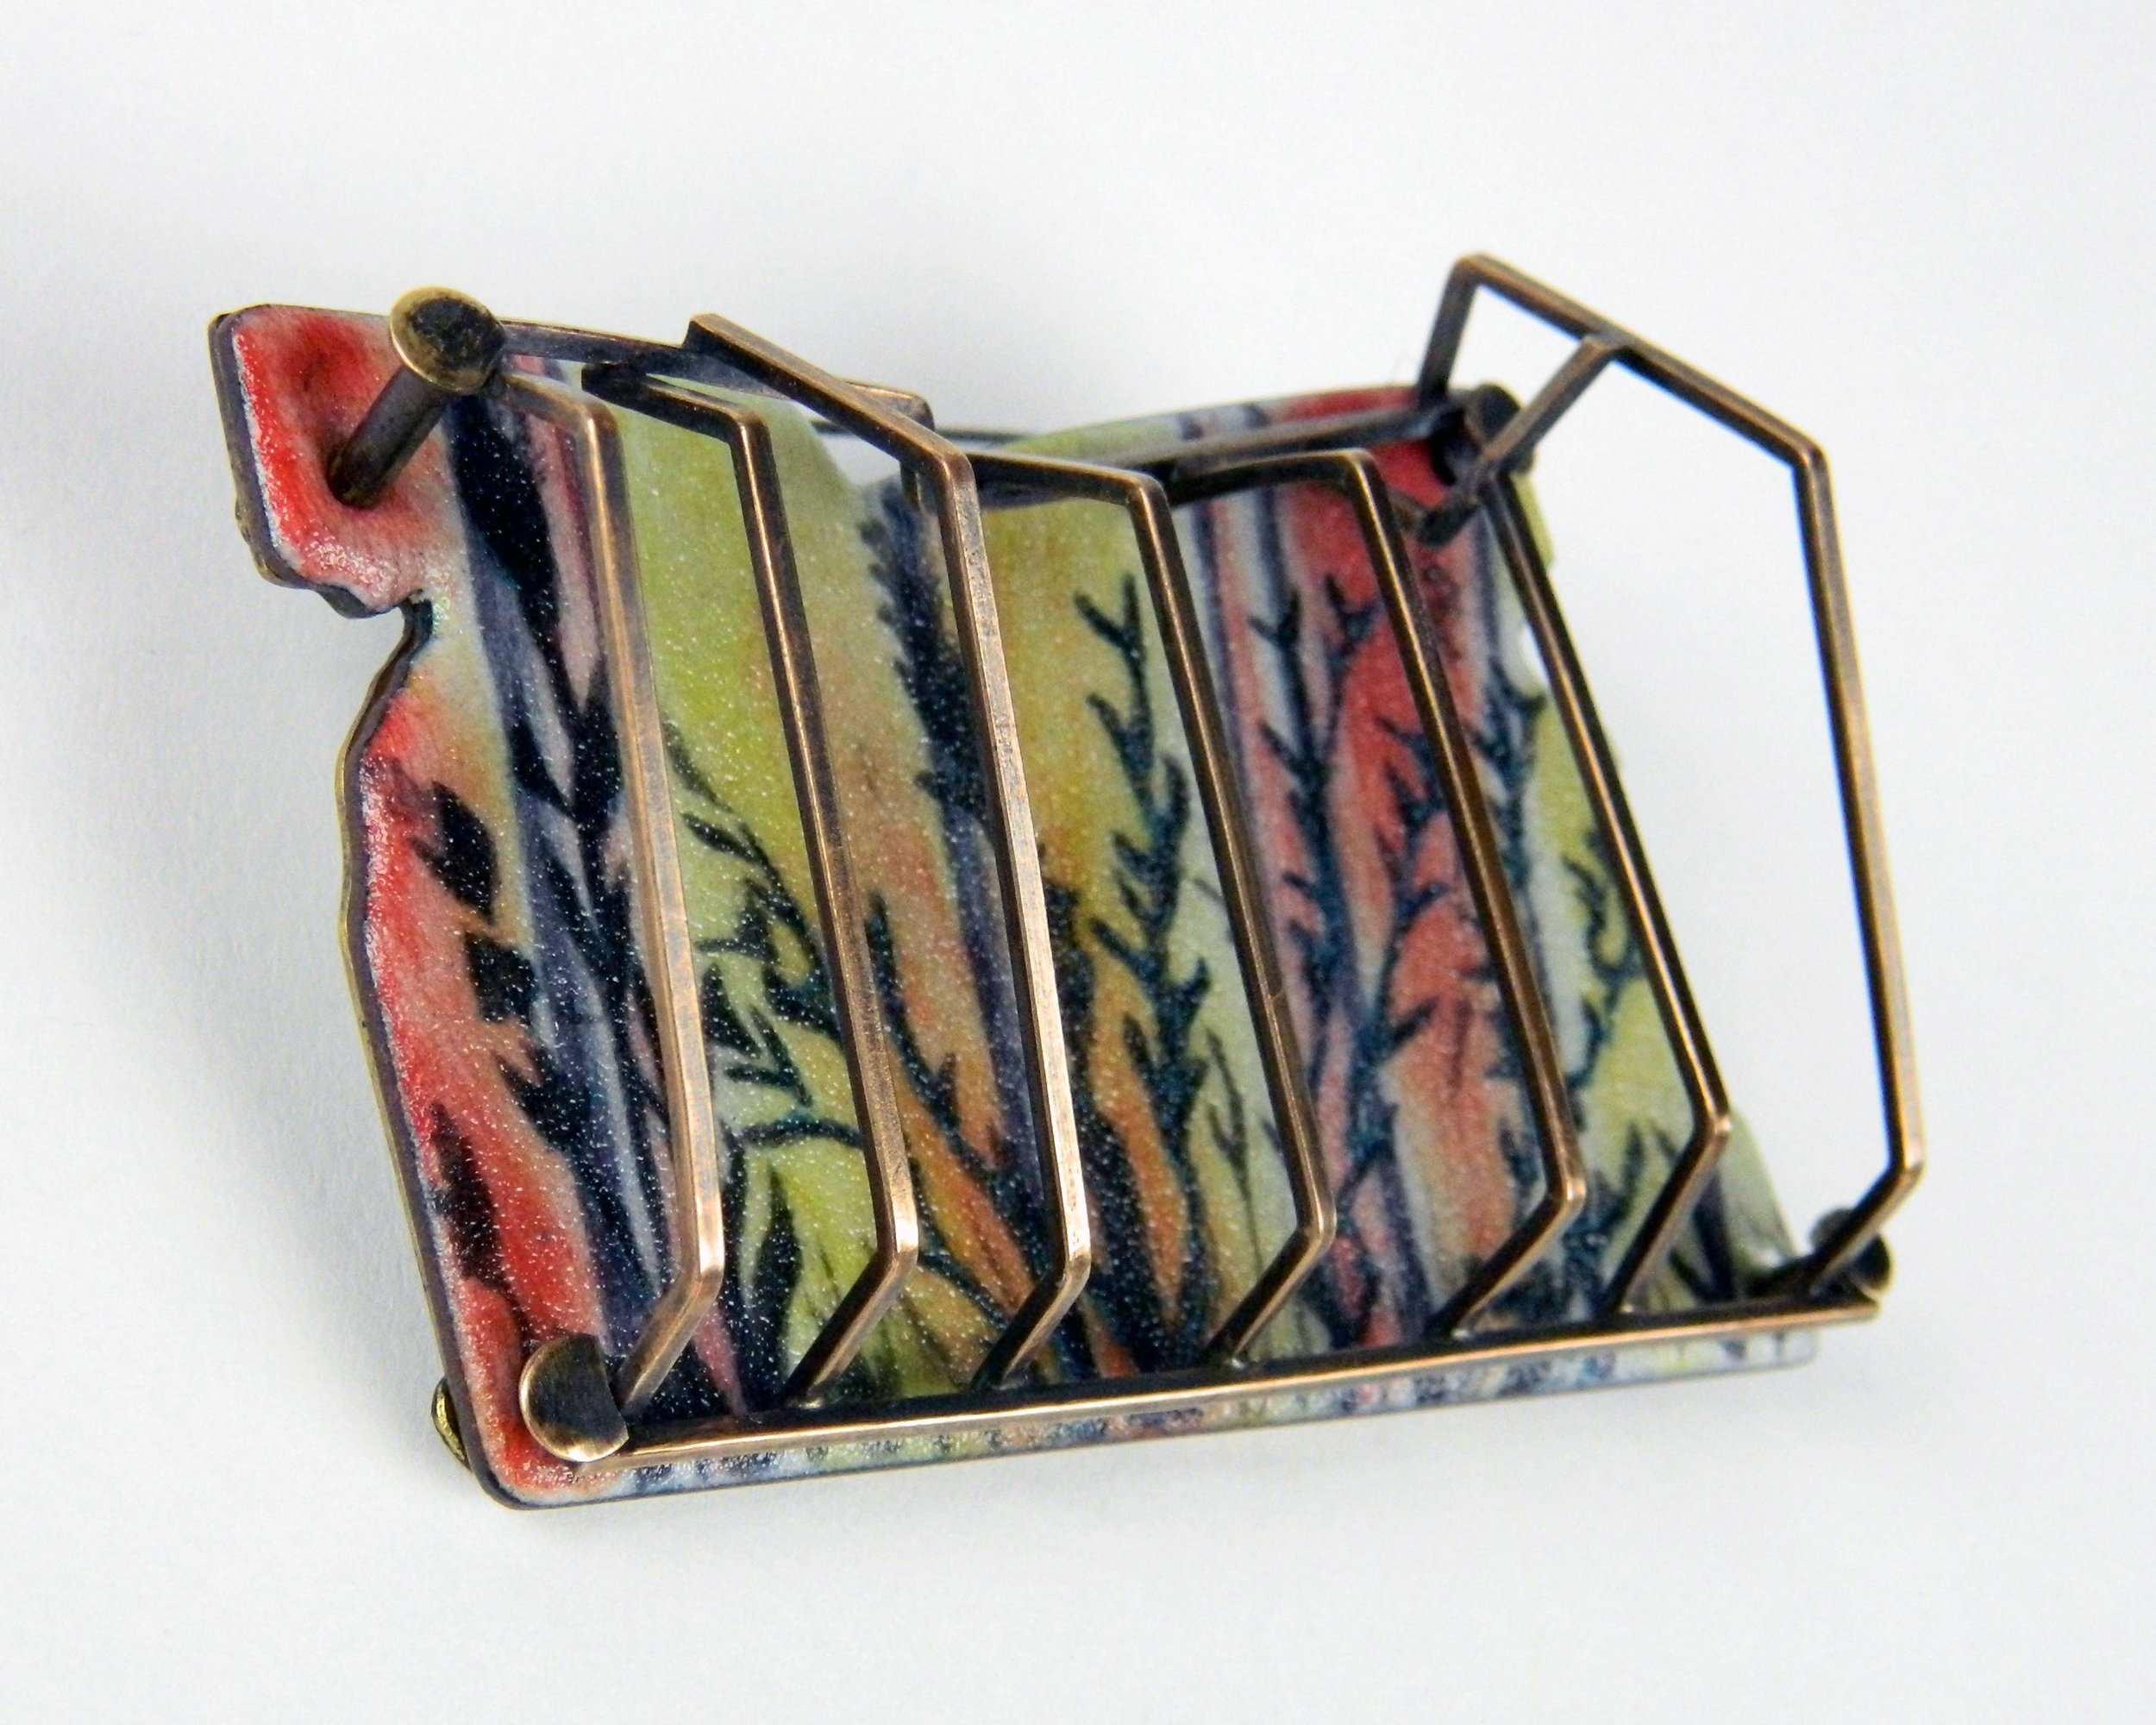 Grate Brooch, 2017, Copper, Bronze, Enamel and Under Glaze, 2 x 3.75 x 1 inches, $400